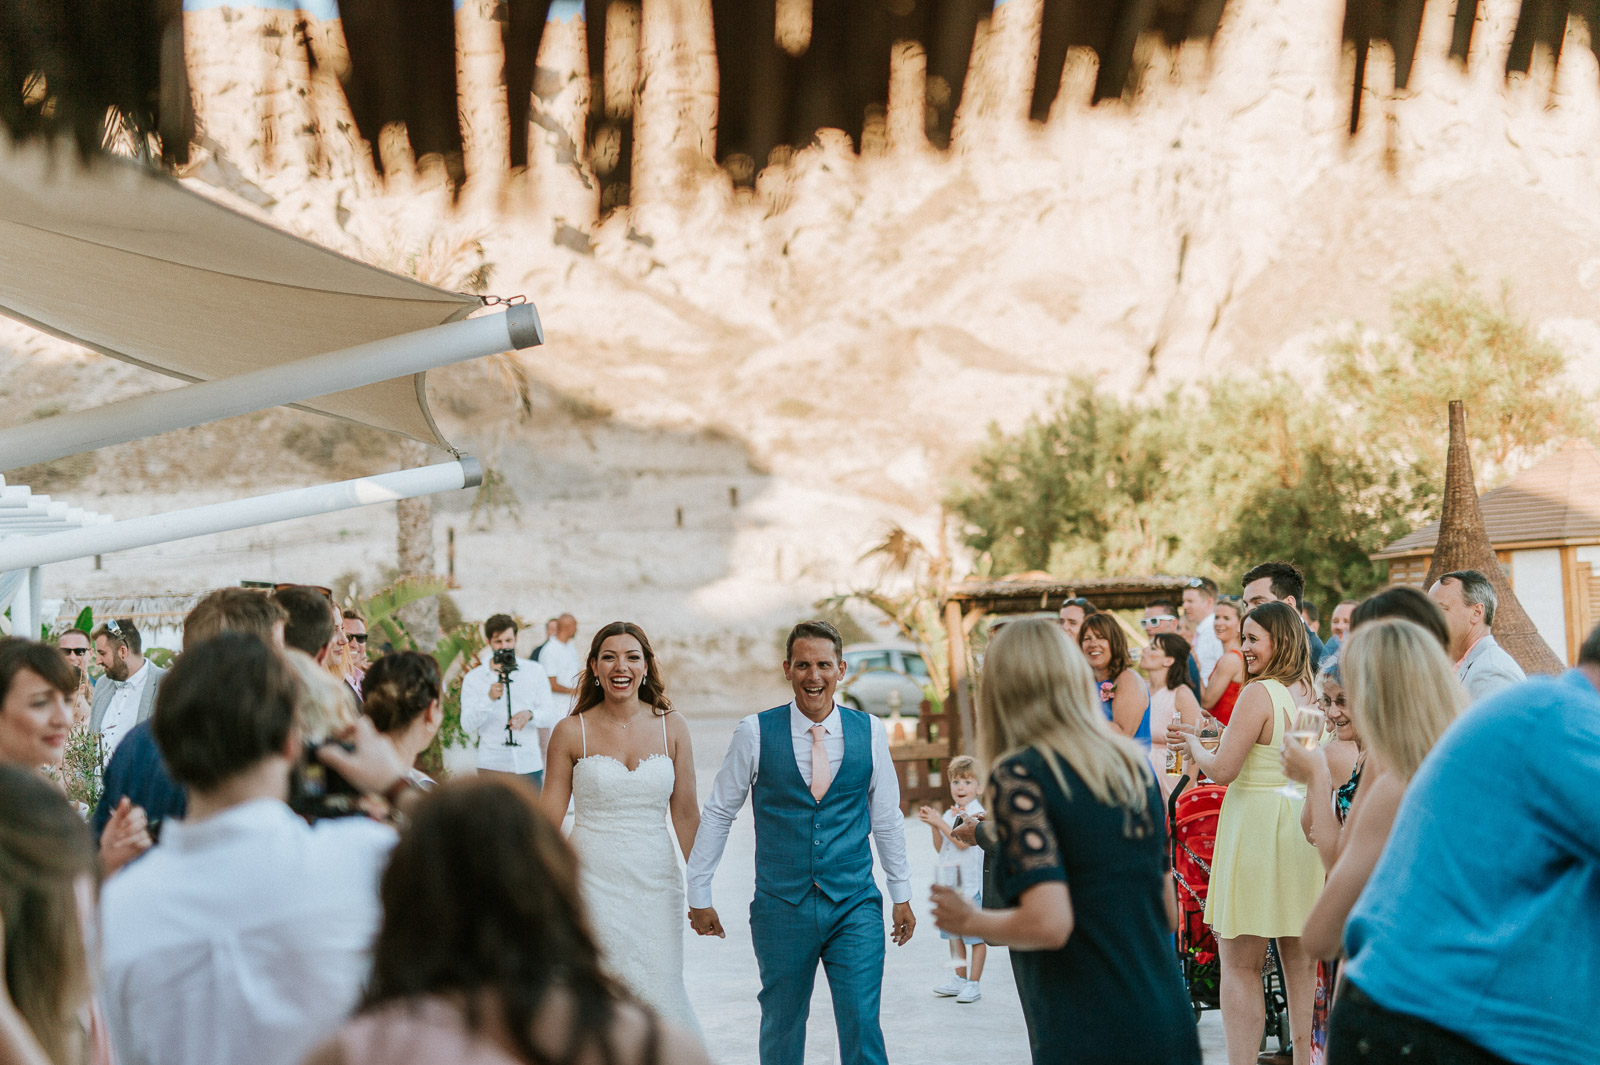 Santorini-Wedding-Photographer-Greece-Destination-Weddings-Mait-Juriado-M&J-Studios-083